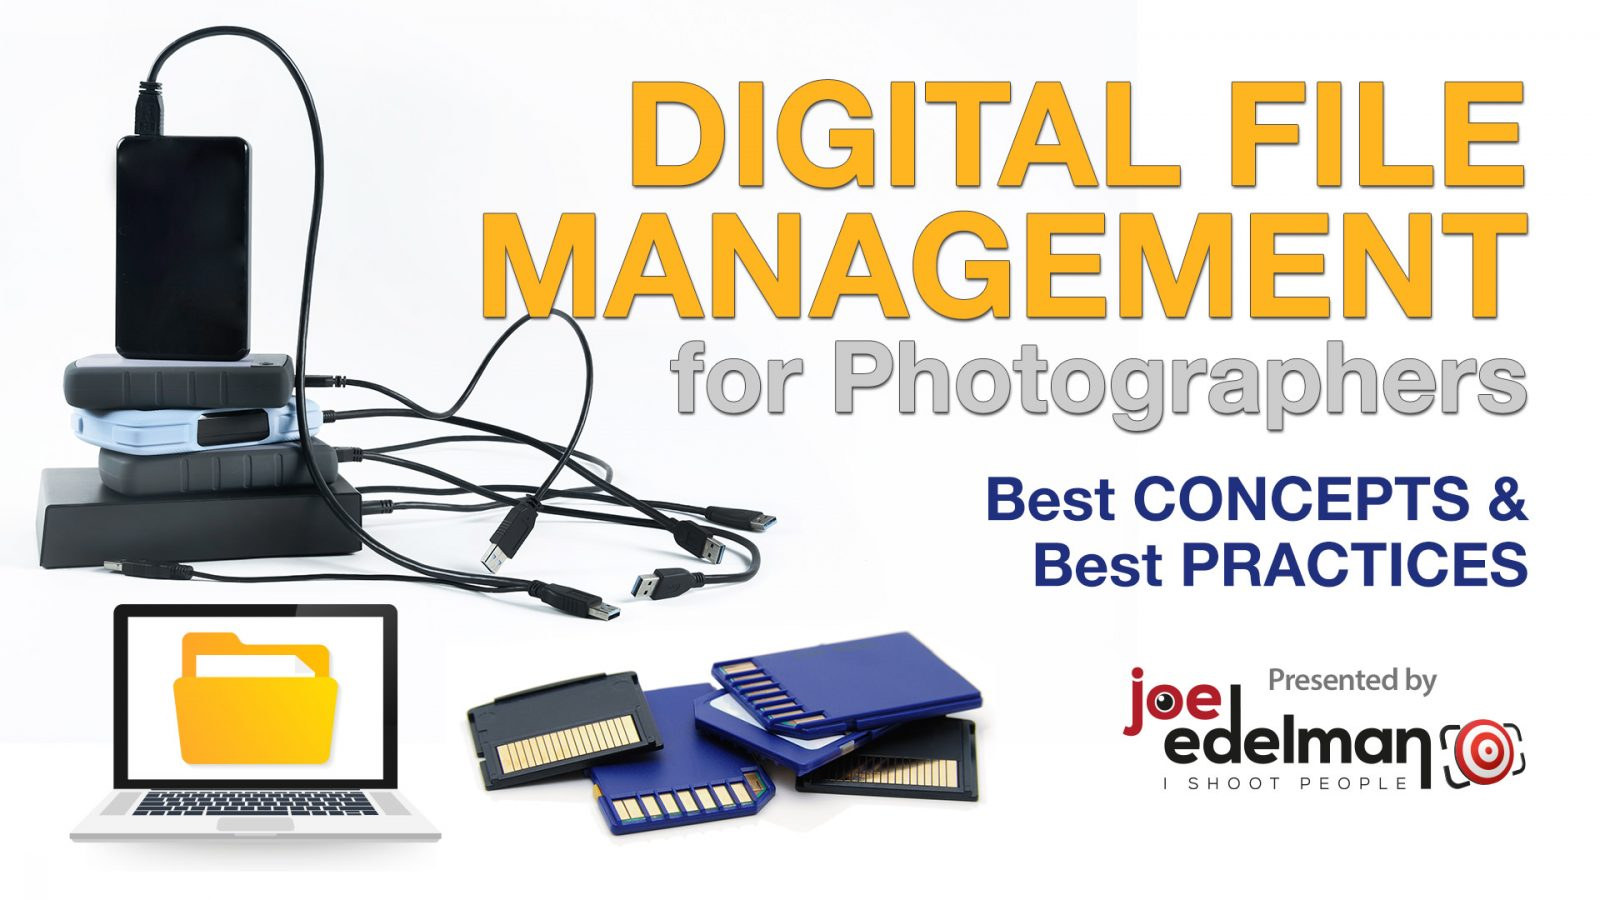 Digital File Management for Photographers from best concepts to best practices